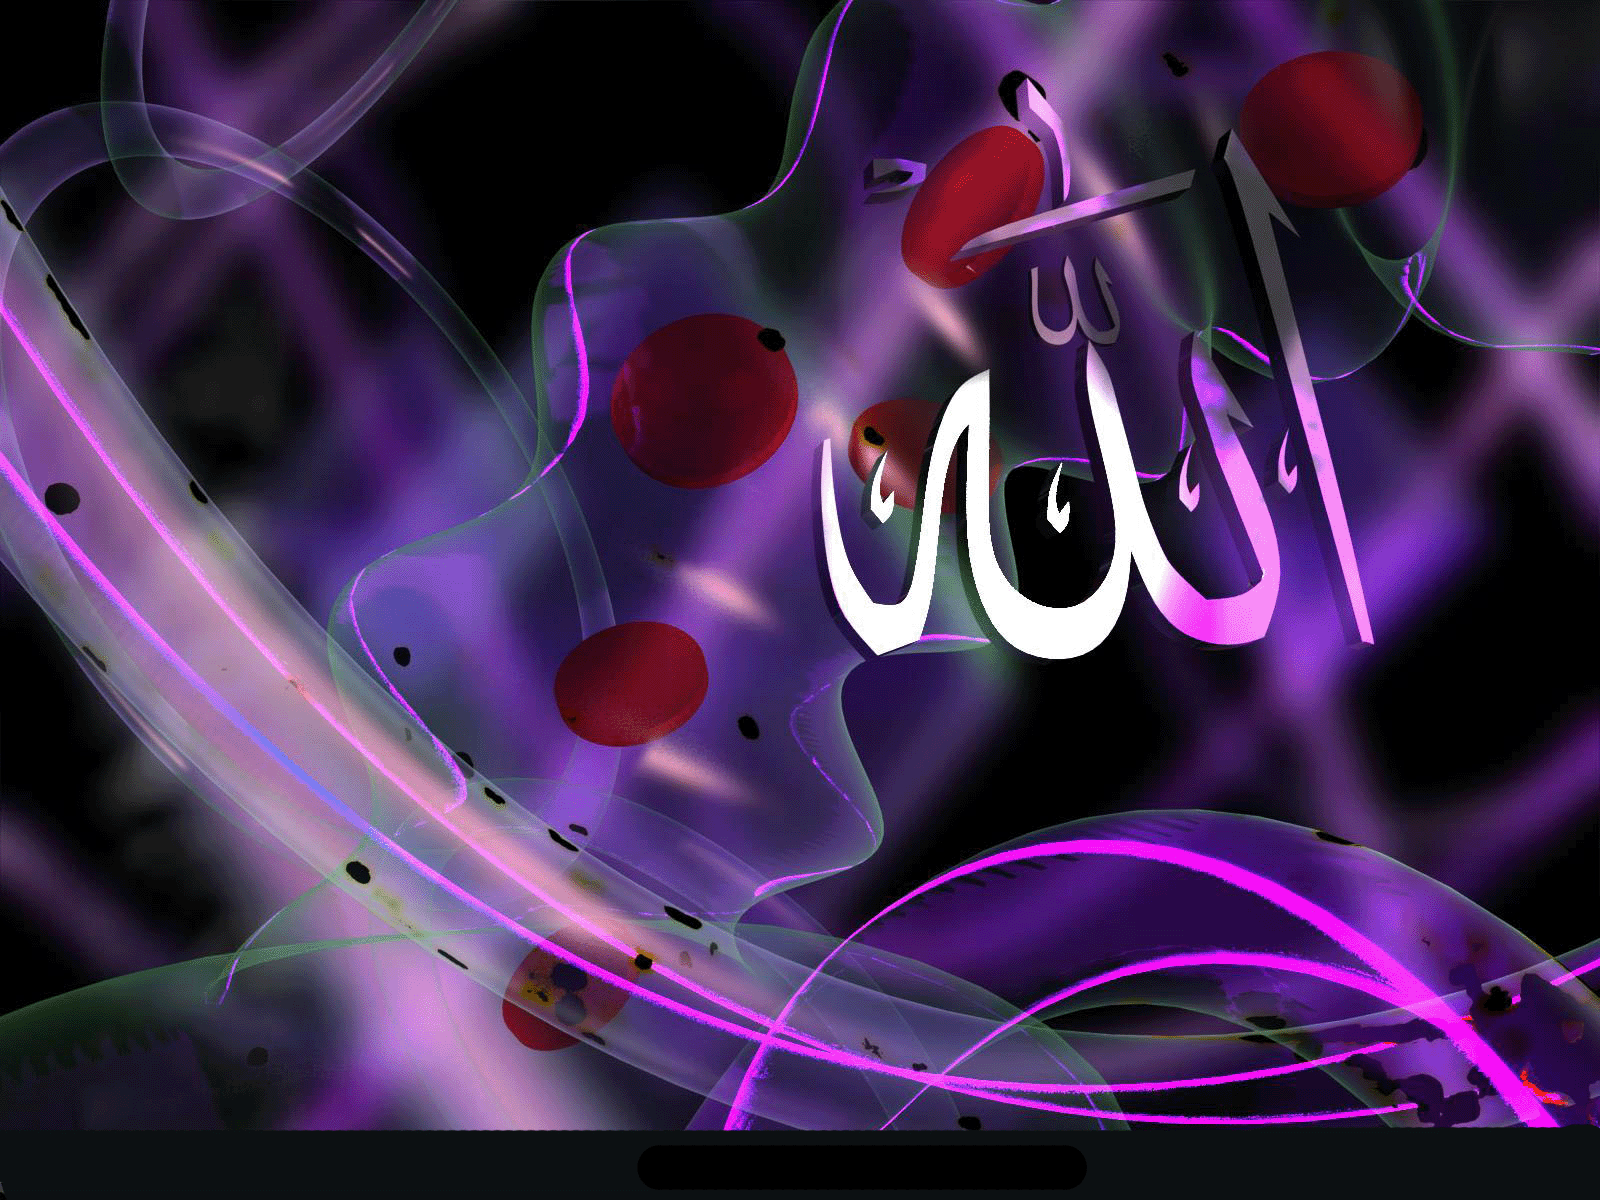 Love Wallpaper Allah : Allah Name Wallpapers 2015 - Wallpaper cave